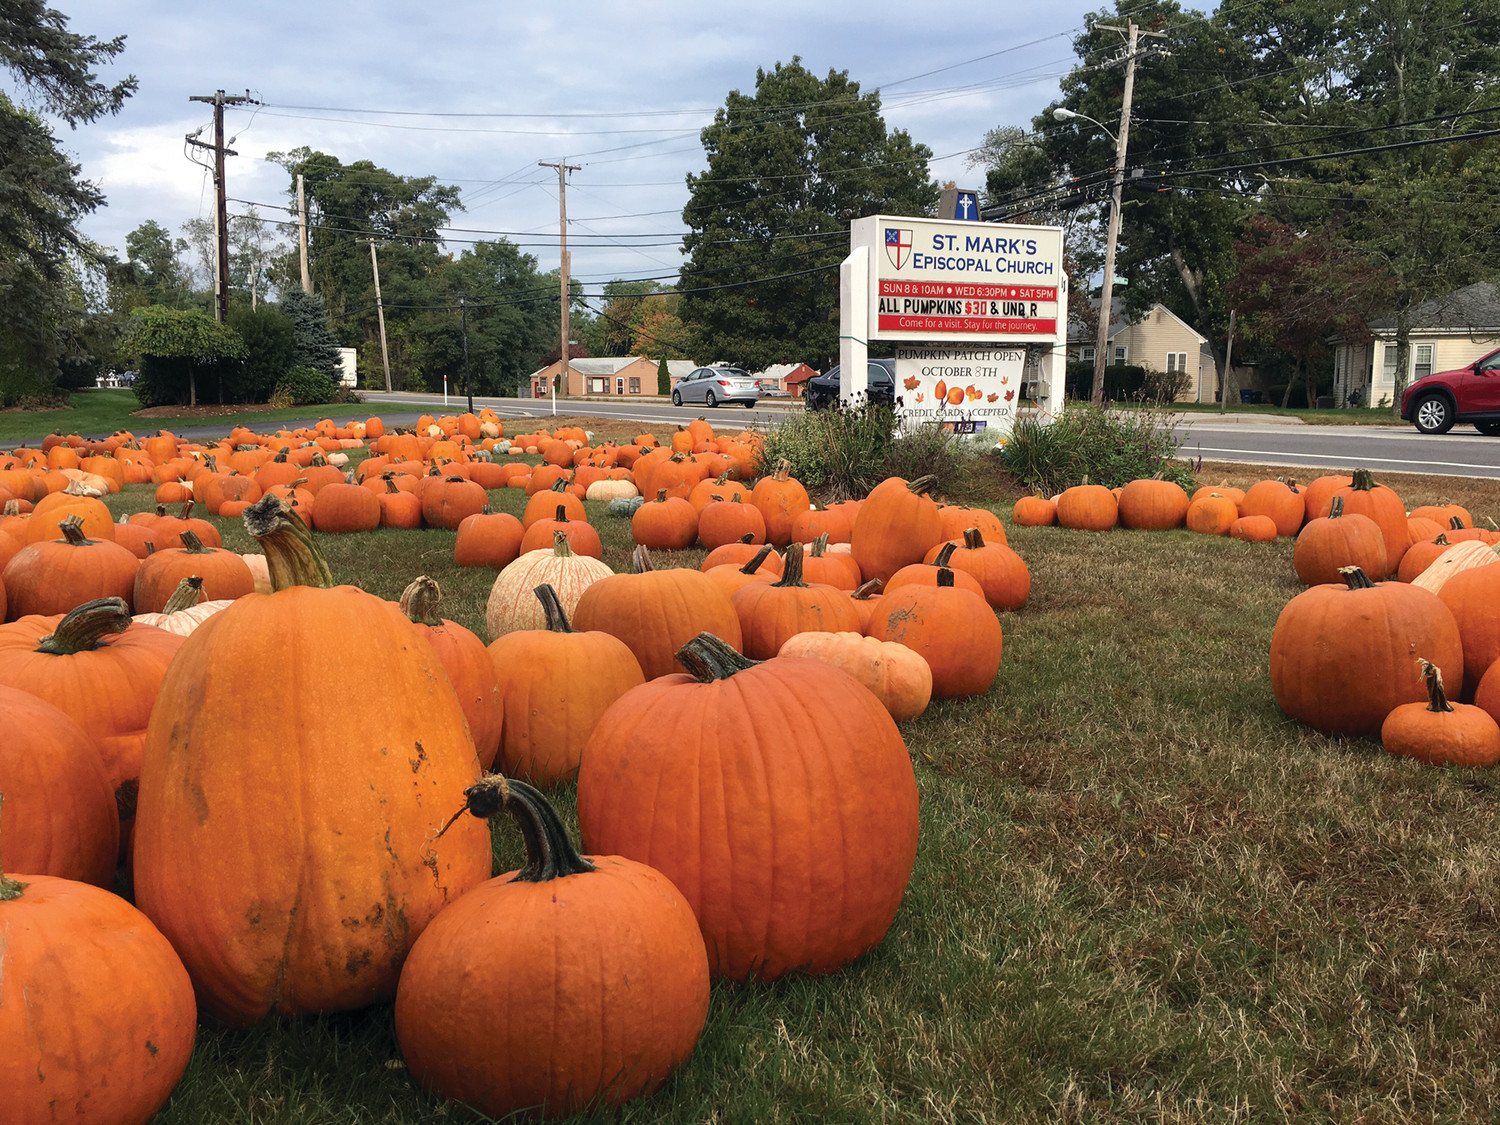 SMALL, TALL, ORANGE AND ALL: A huge variety of pumpkins and gourds are available, from pint sized green and yellow to the traditional massive orange type.